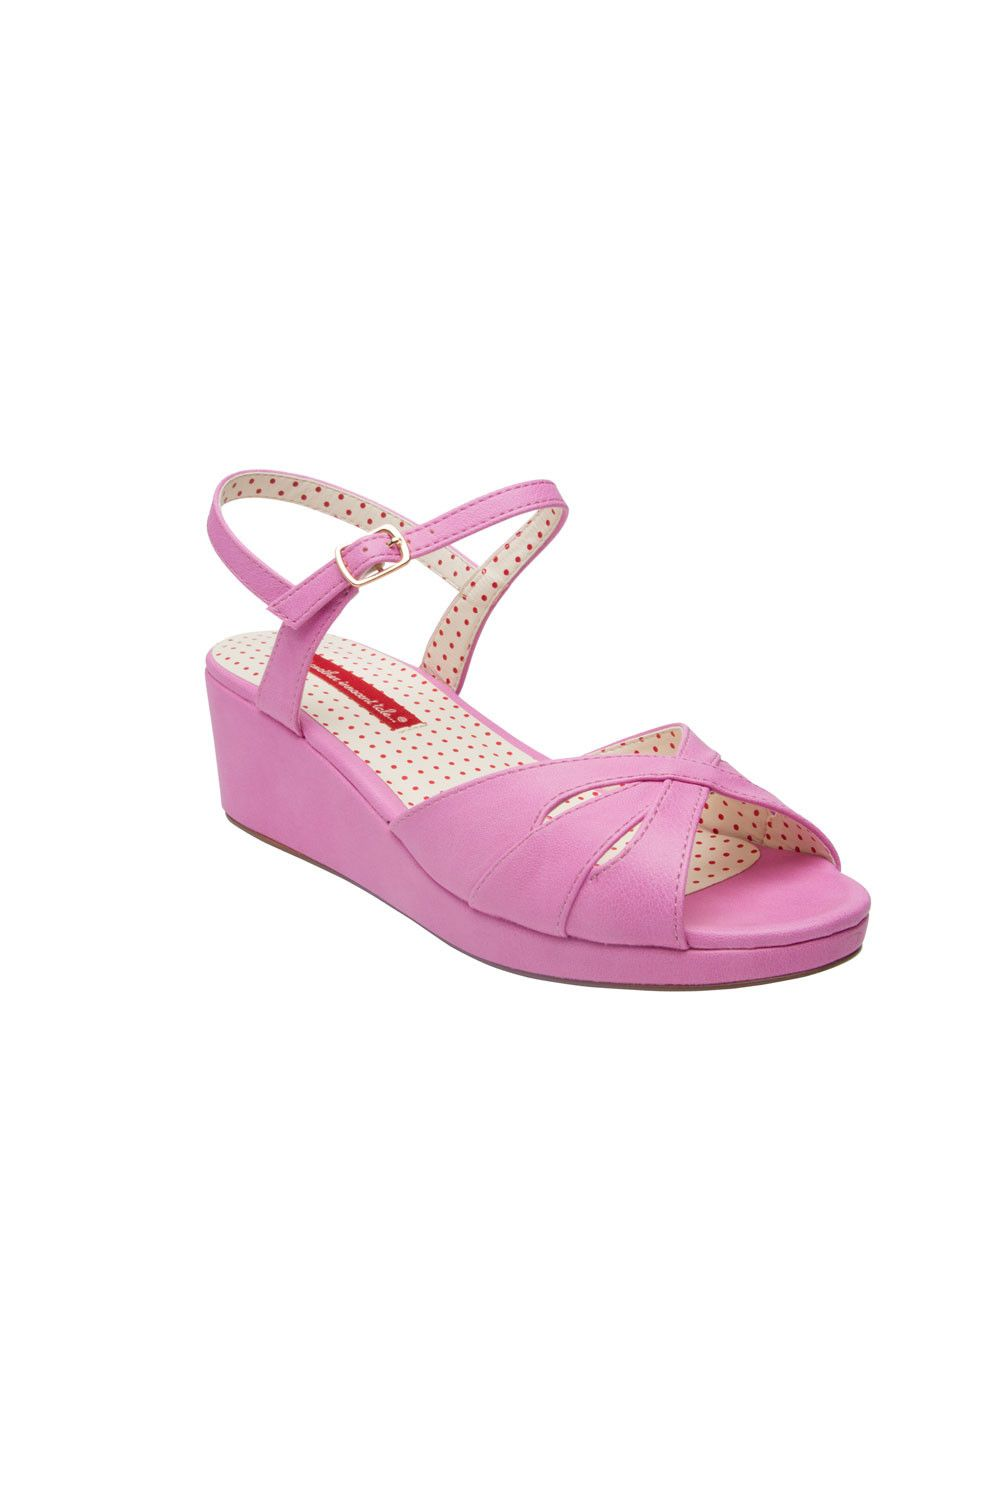 afdbfbeea46 Kiki Wedge in Cotton Candy Pink - Shoes   Pinup Girl Clothing ...